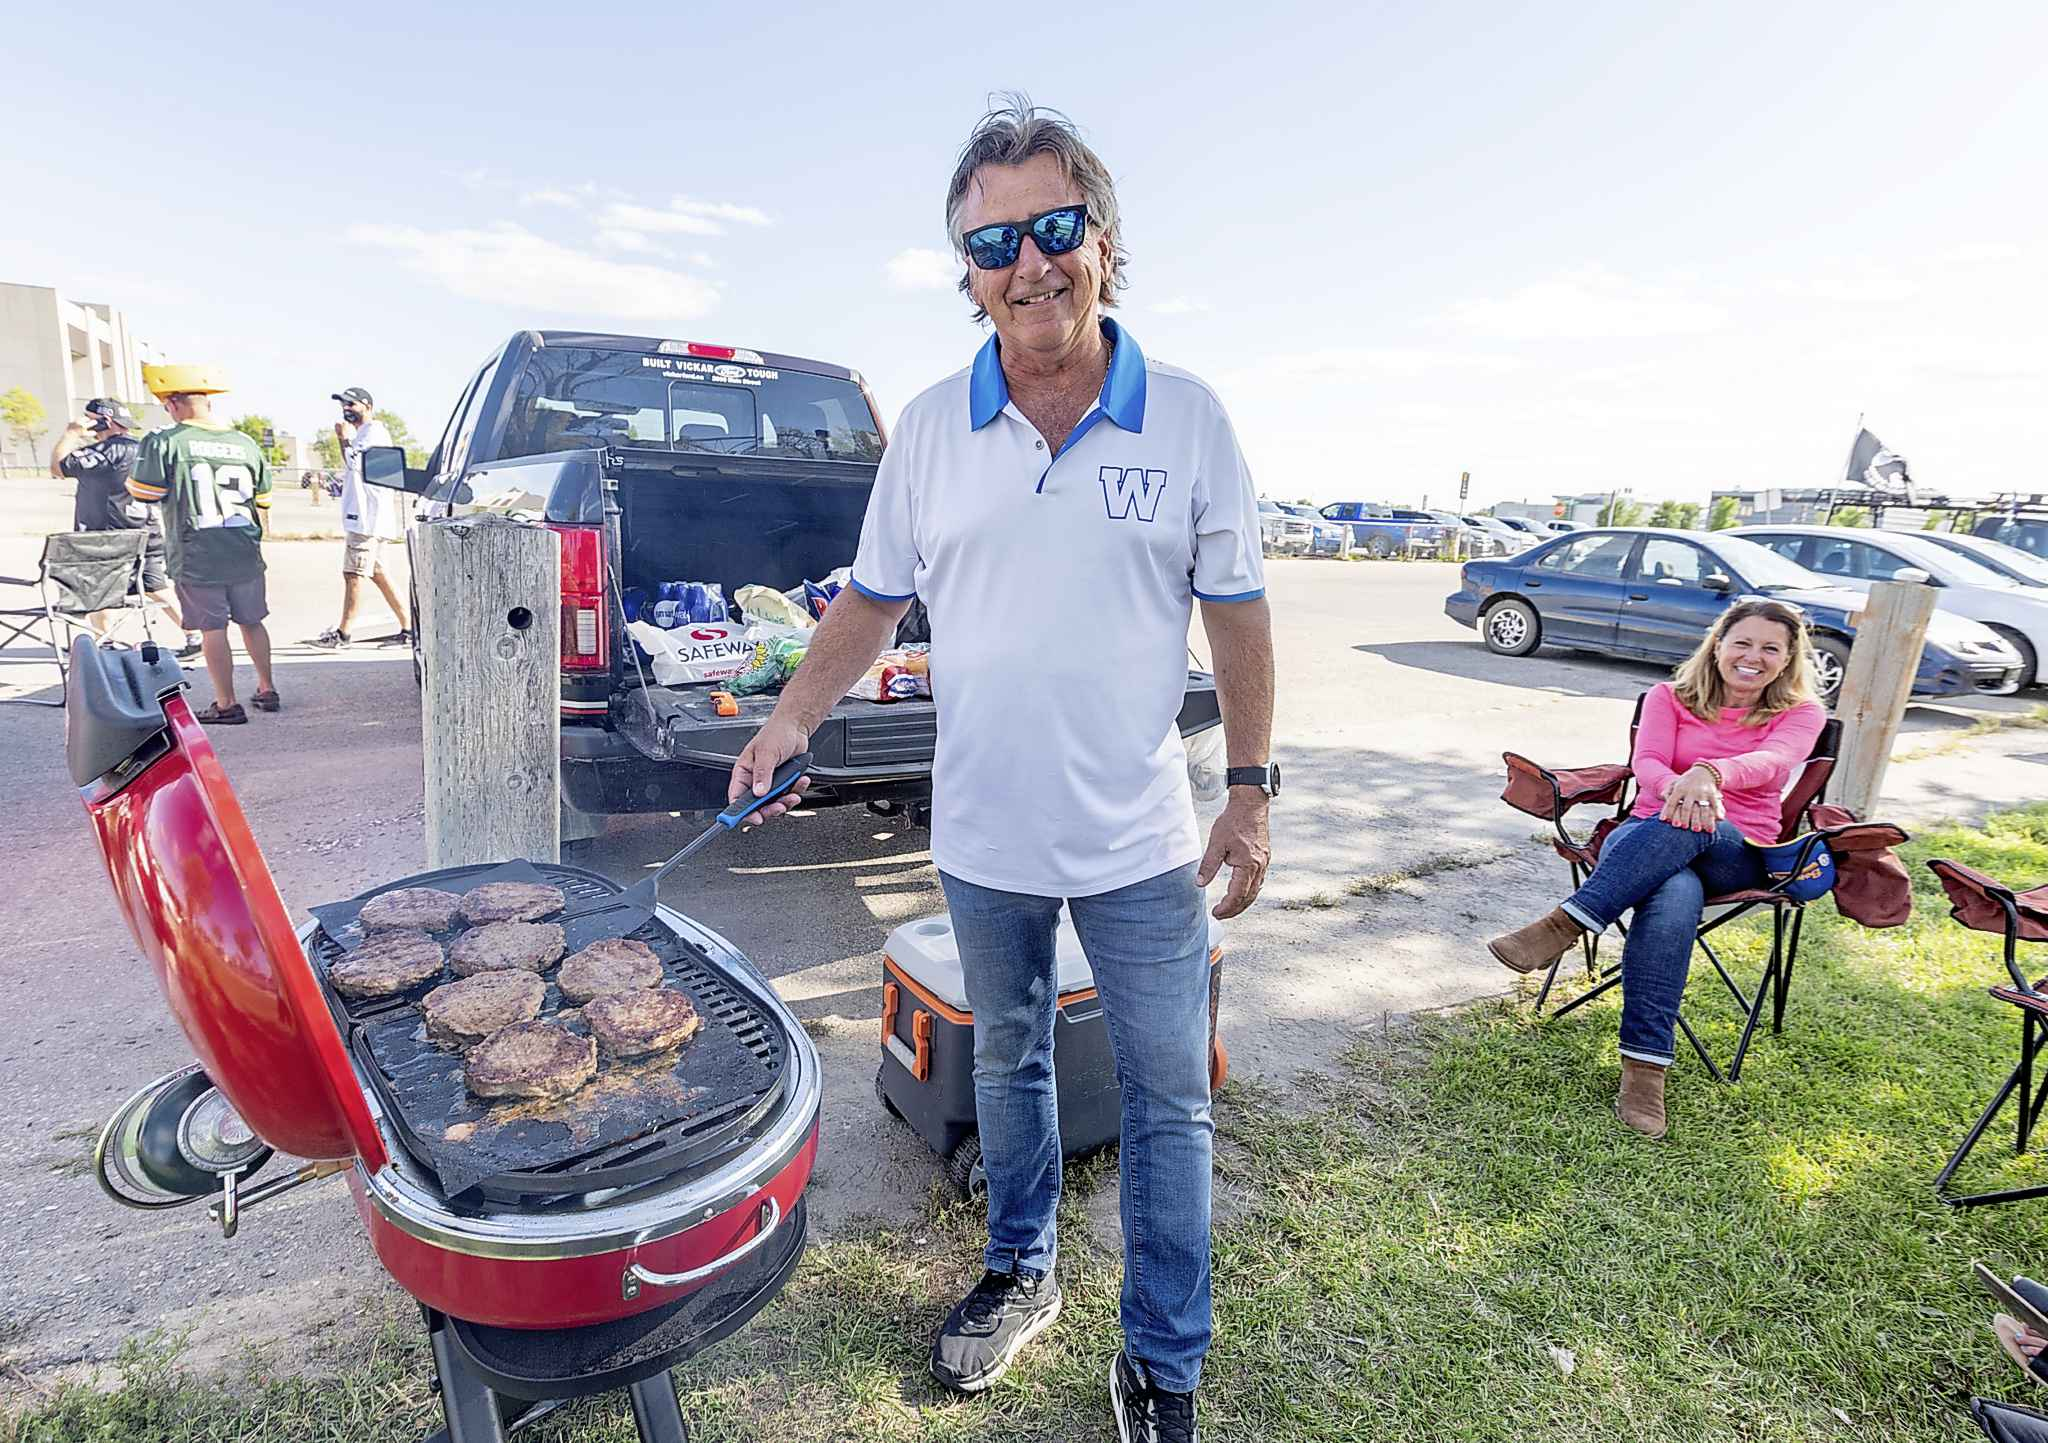 Tailgater David Olivier grilles up some burgers in a parking lot for his family before the NFL pre-season game between the Green Bay Packers and Oakland Raiders at IG Field Thursday evening.